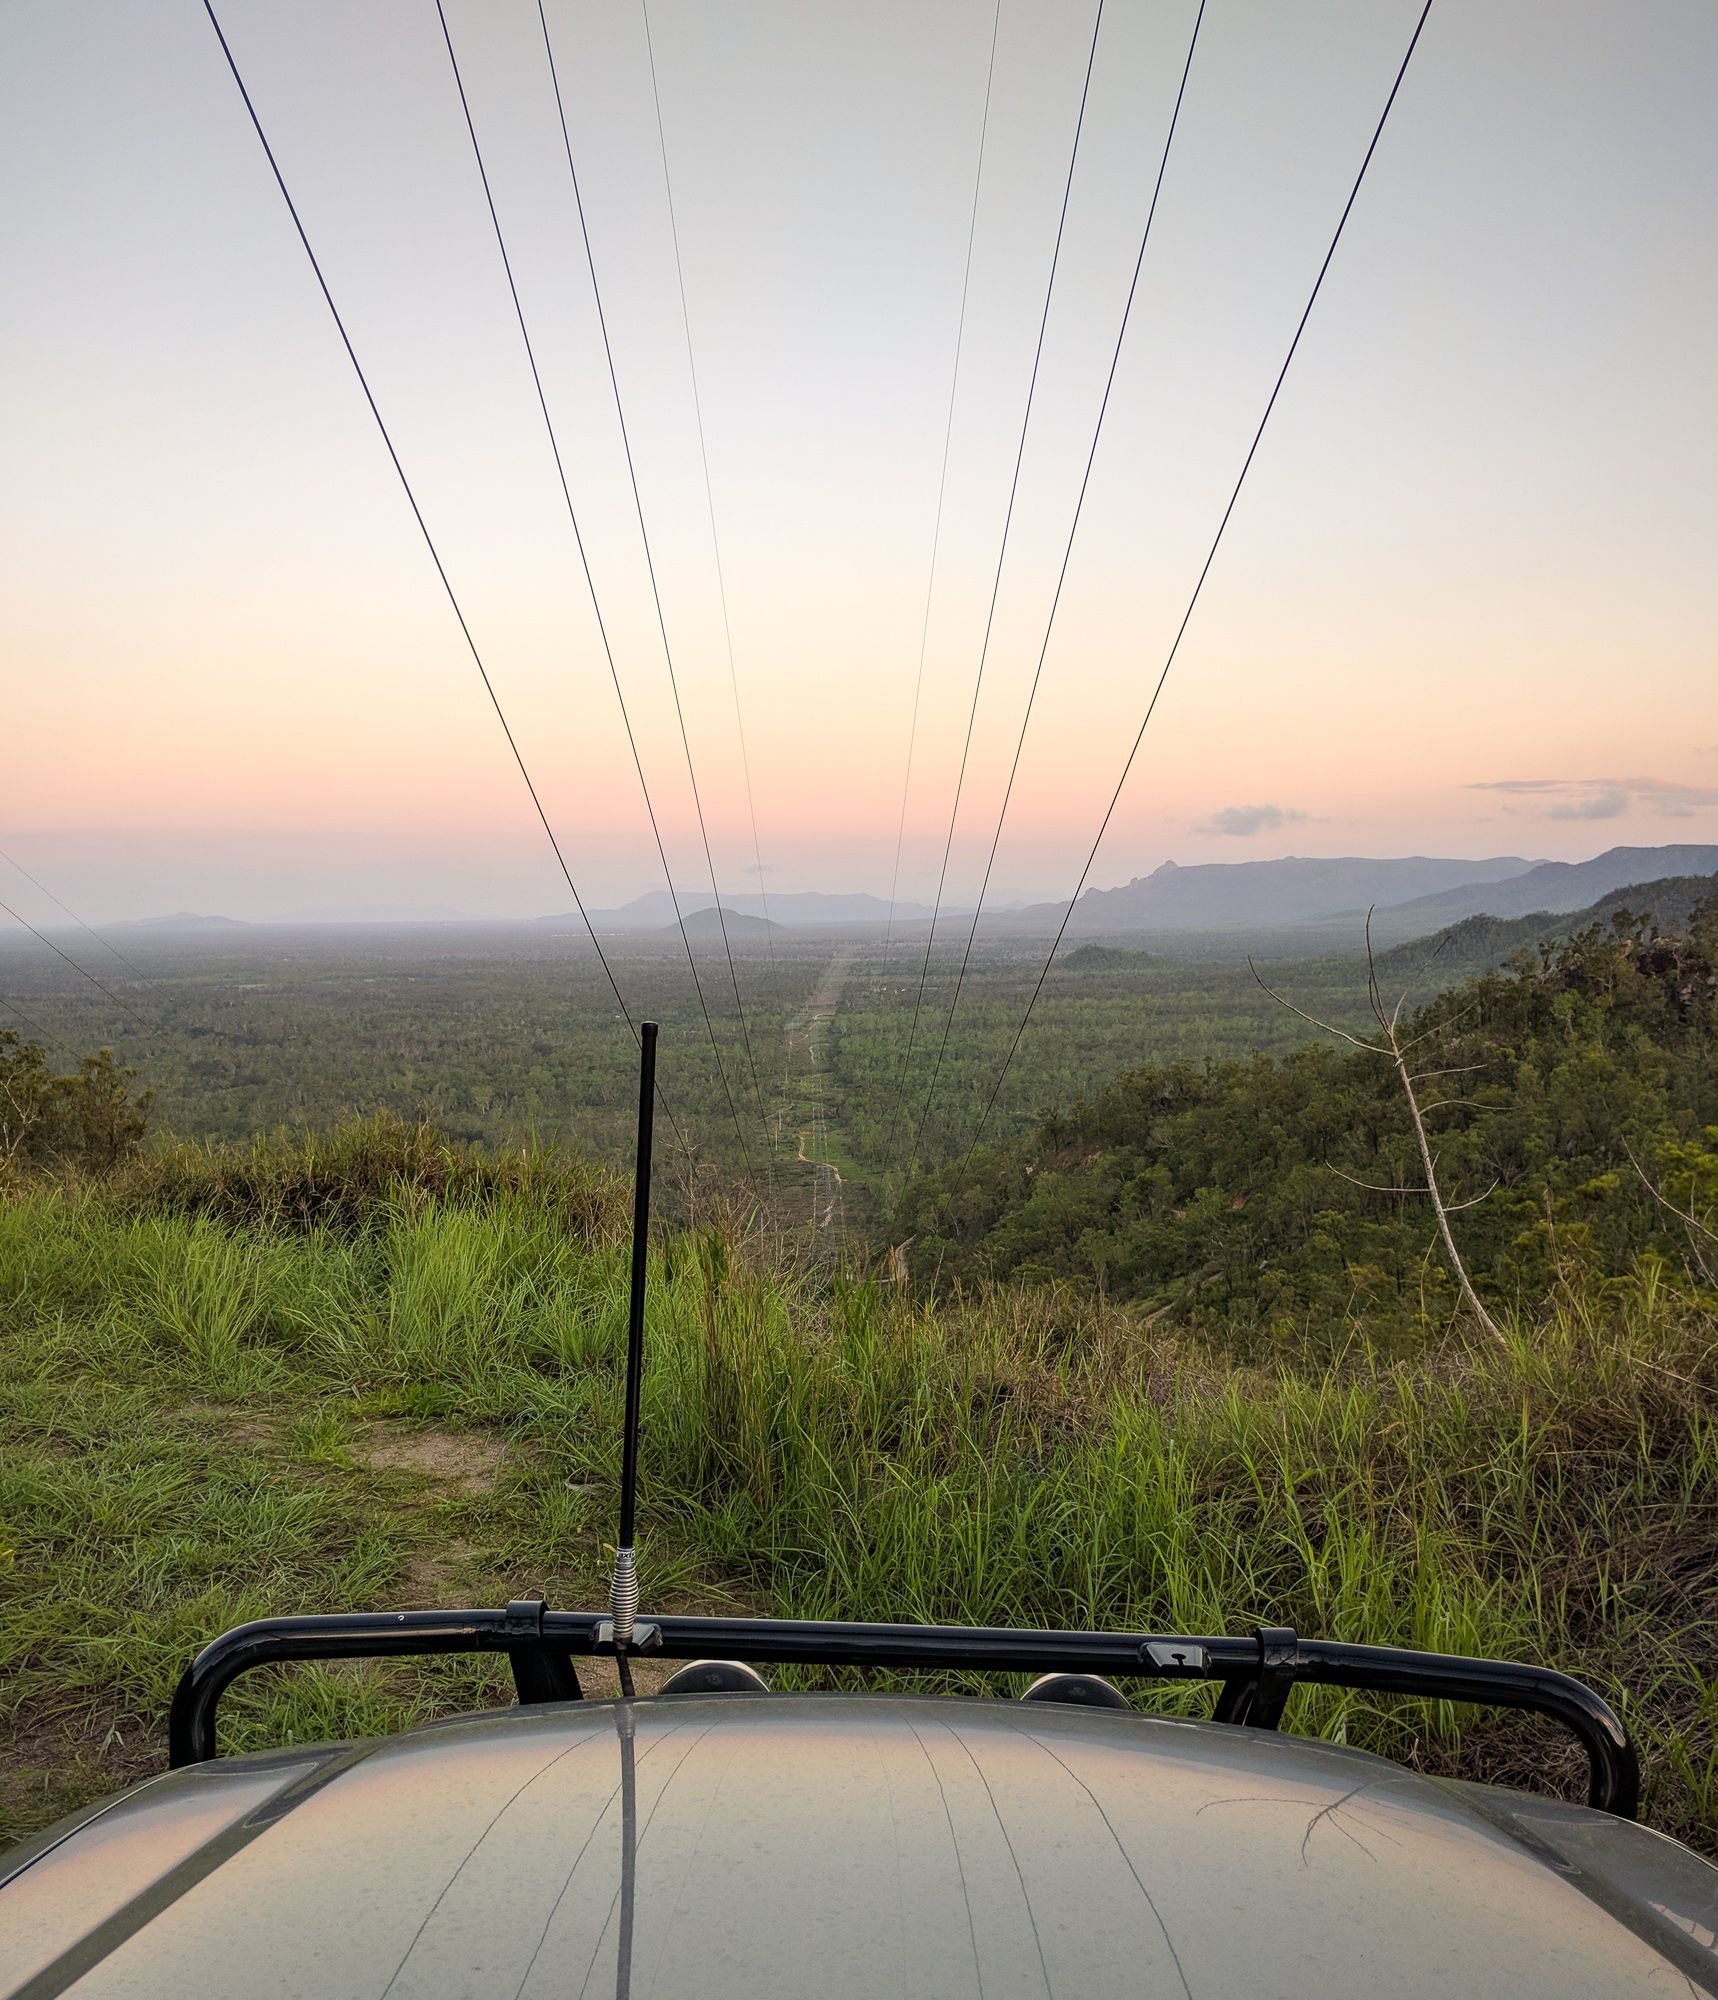 View from the Hervey Range powerlines